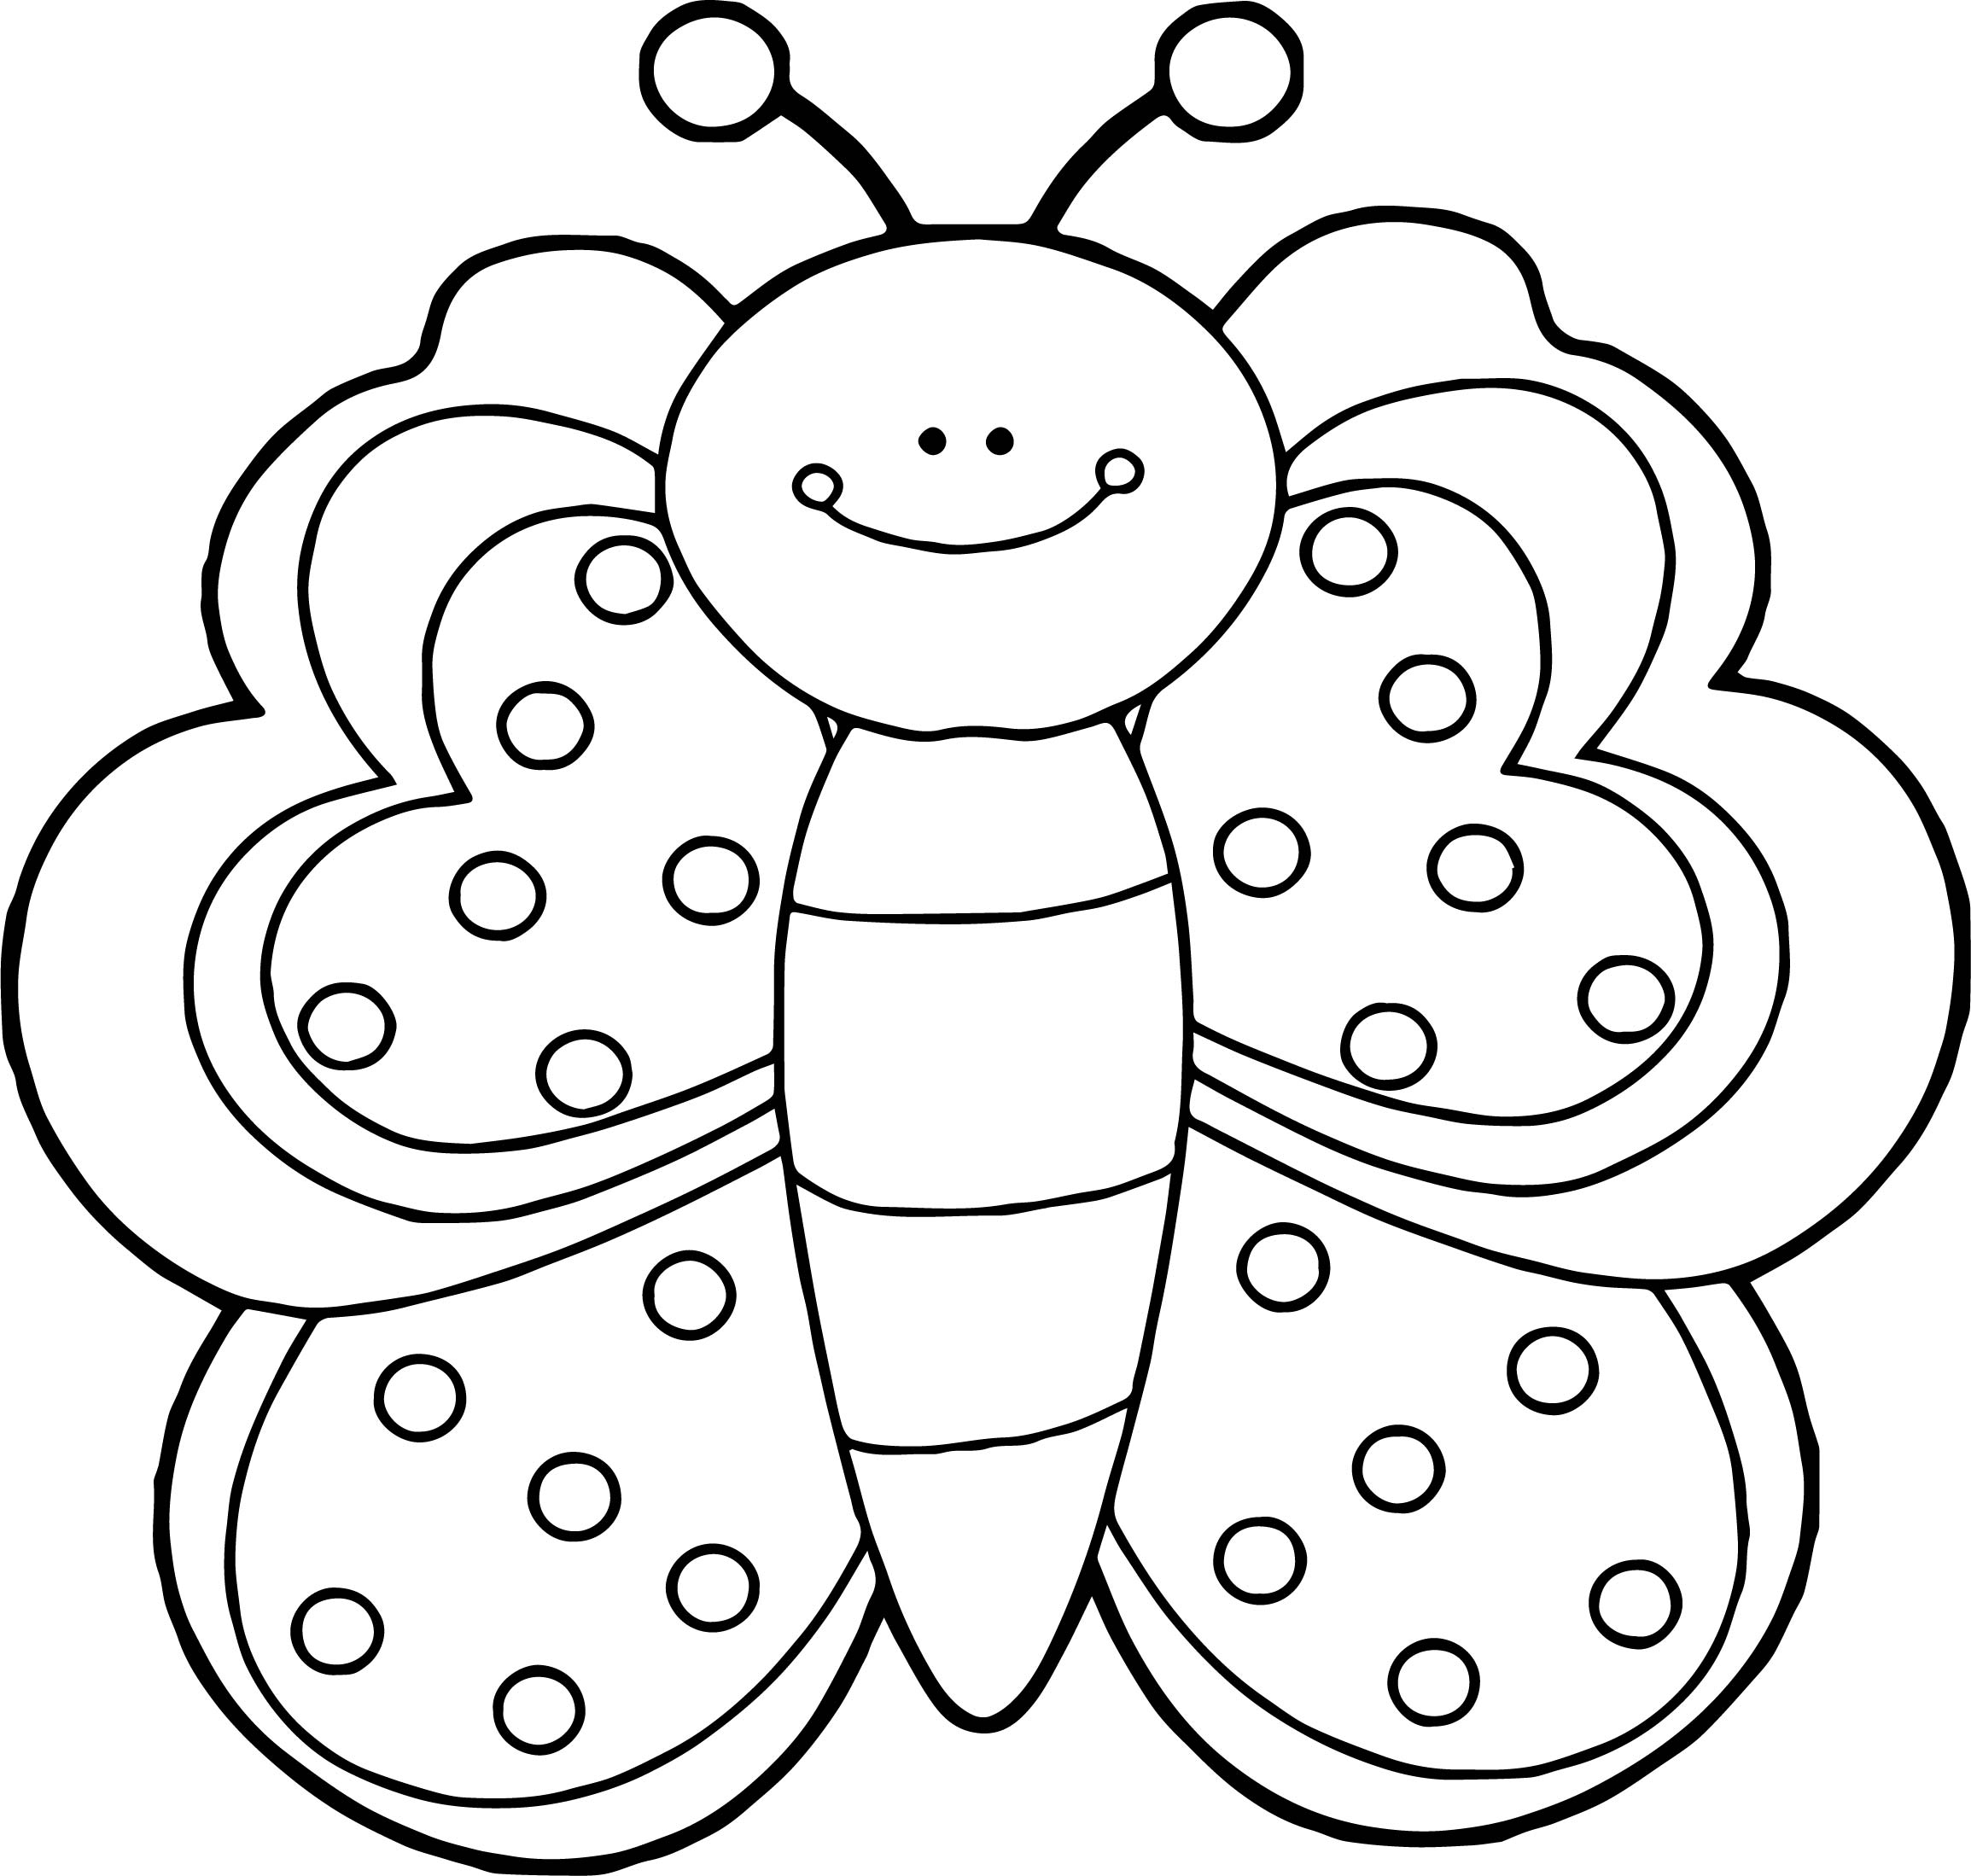 Front View Butterfly Coloring Page